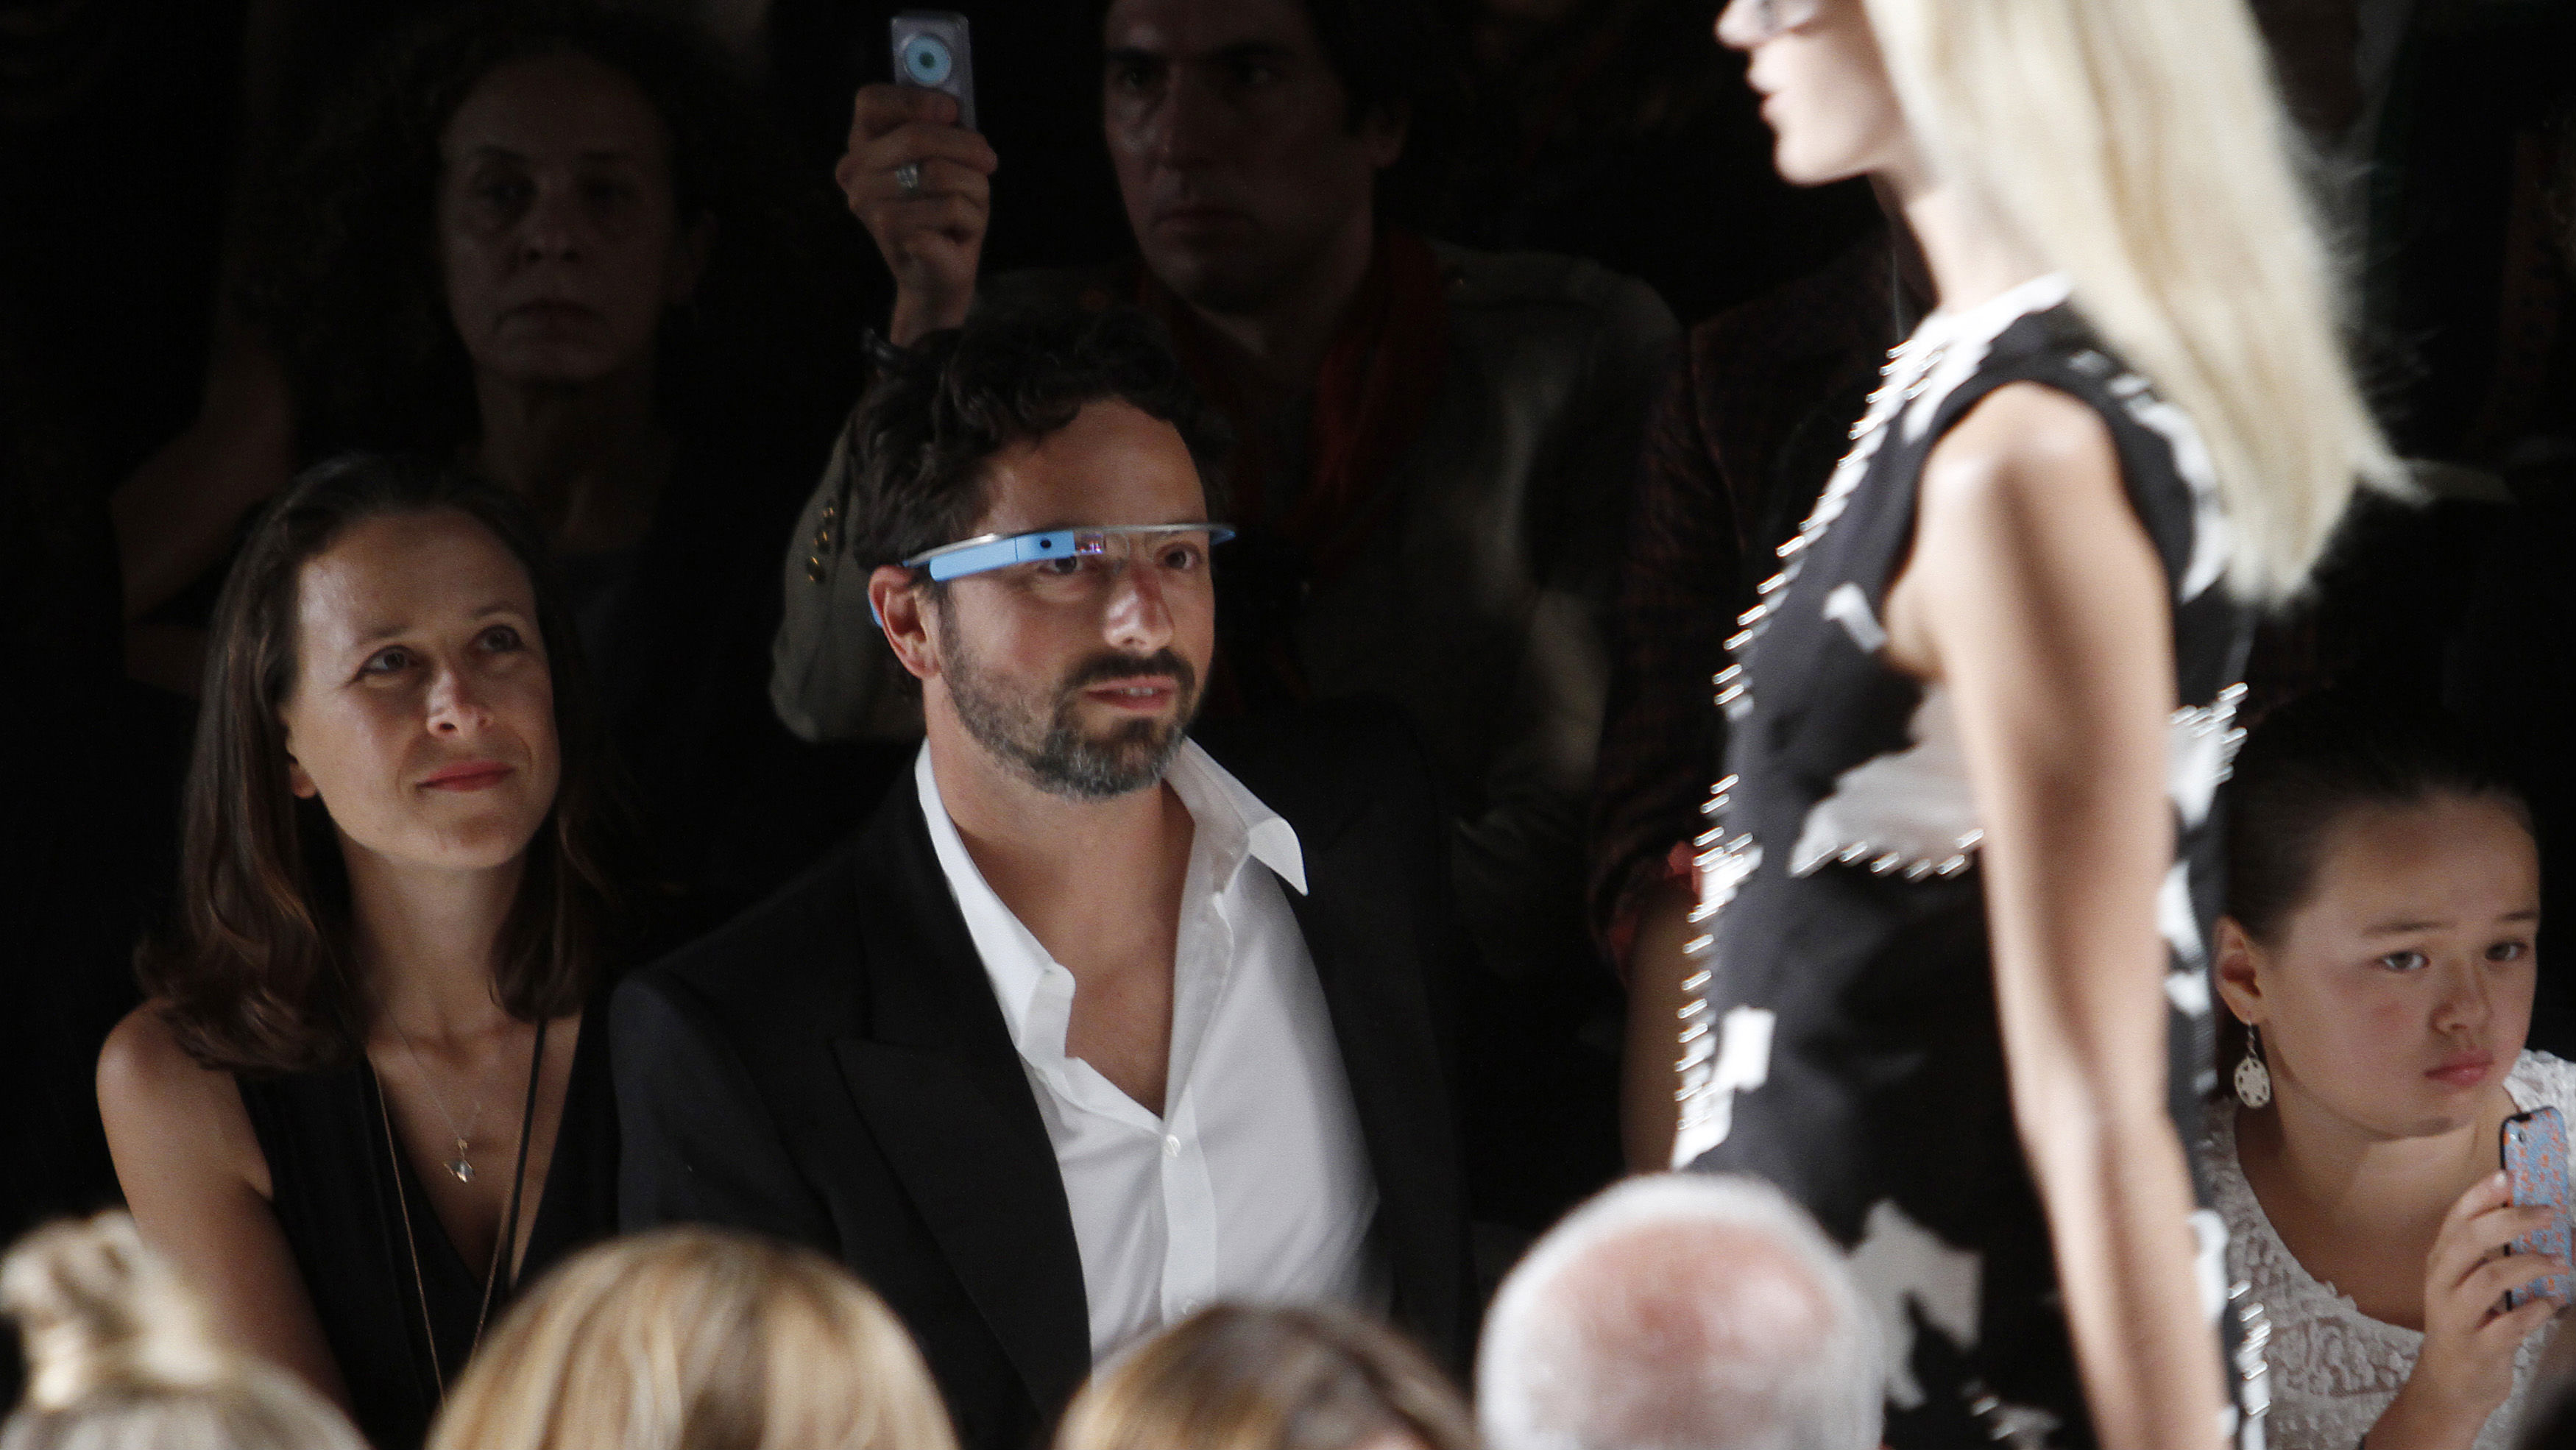 """Google founder Sergey Brin (R) and a guest watch the the Diane von Furstenberg Spring/Summer 2013 collection show during New York Fashion Week September 9, 2012. The show was used as a launching event for Google's new product """"Glass by Google"""". REUTERS/Carlo Allegri"""